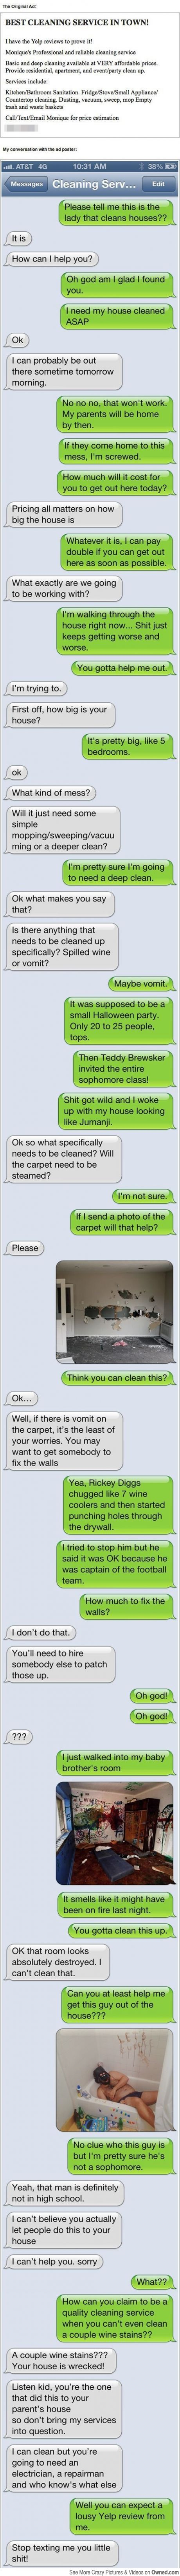 Now this is how you troll a person who posted a craigslist ad!